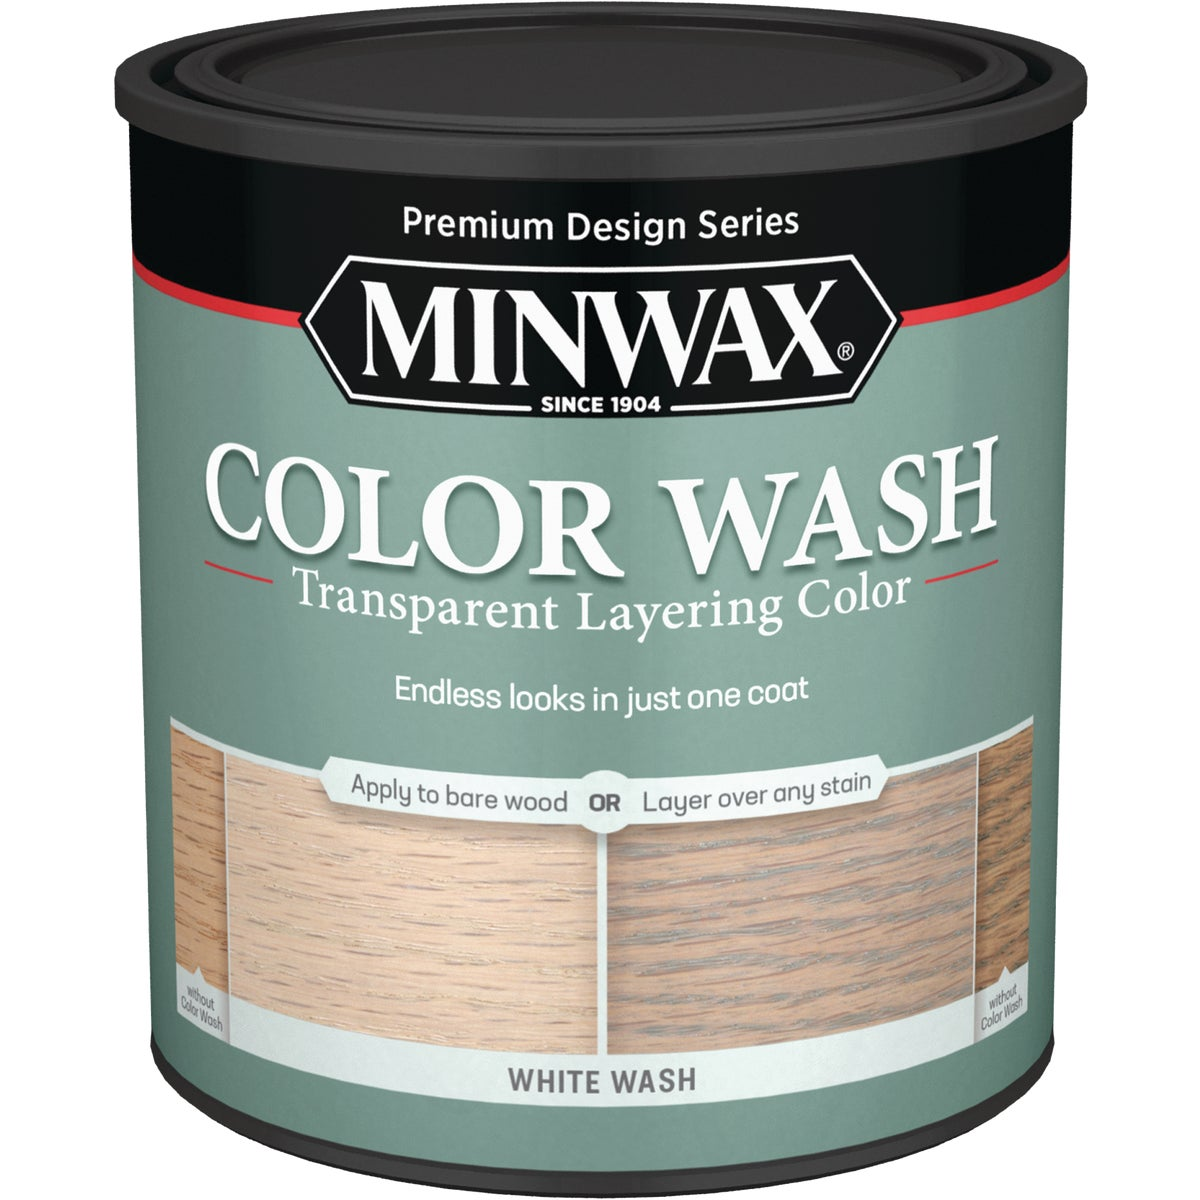 W/B PICKLING WOOD STAIN - 618604444 by Minwax Company